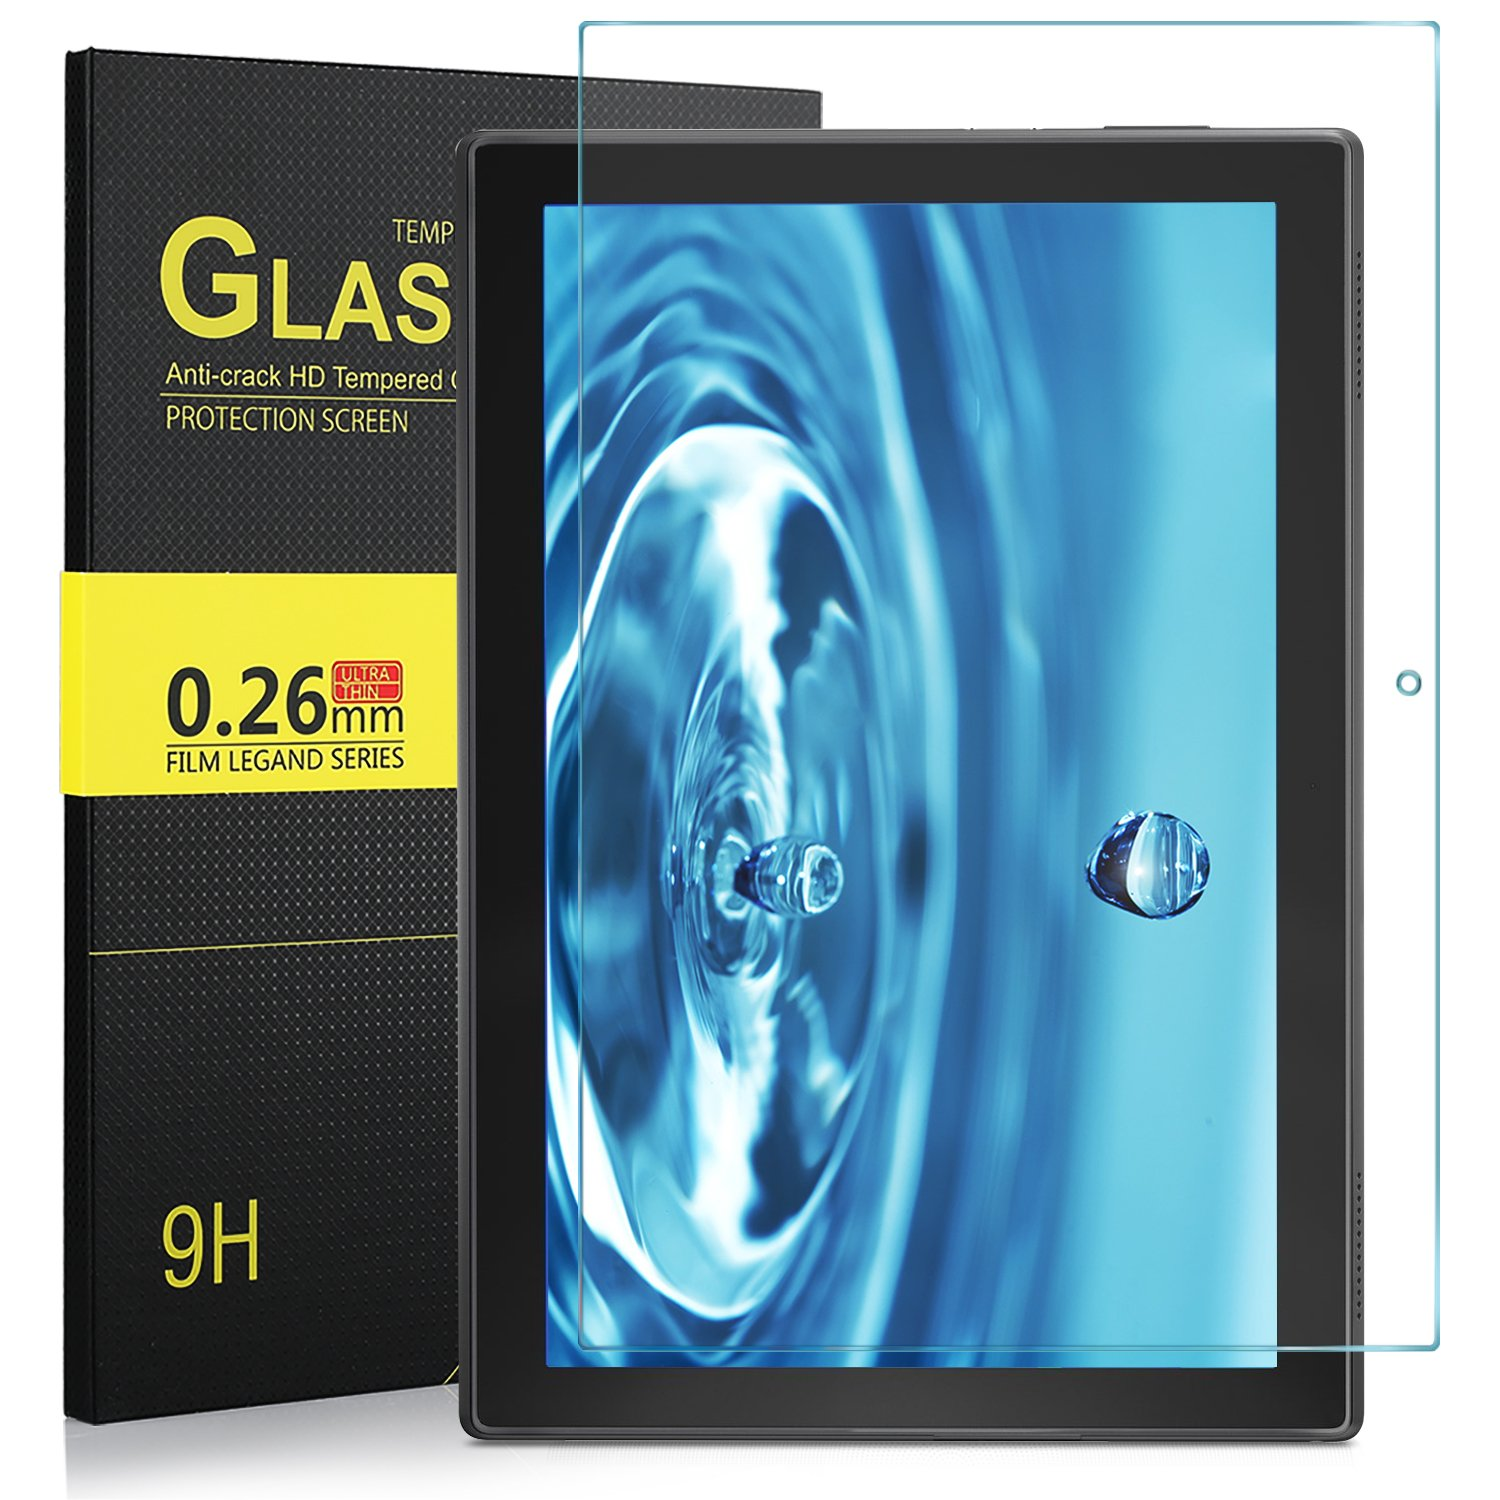 IVSO Lenovo Tab 4 10 Screen Protector, Premium Tempered-Glass Screen Protector for Lenovo Tab 4 10 10.1 inch Tablet…